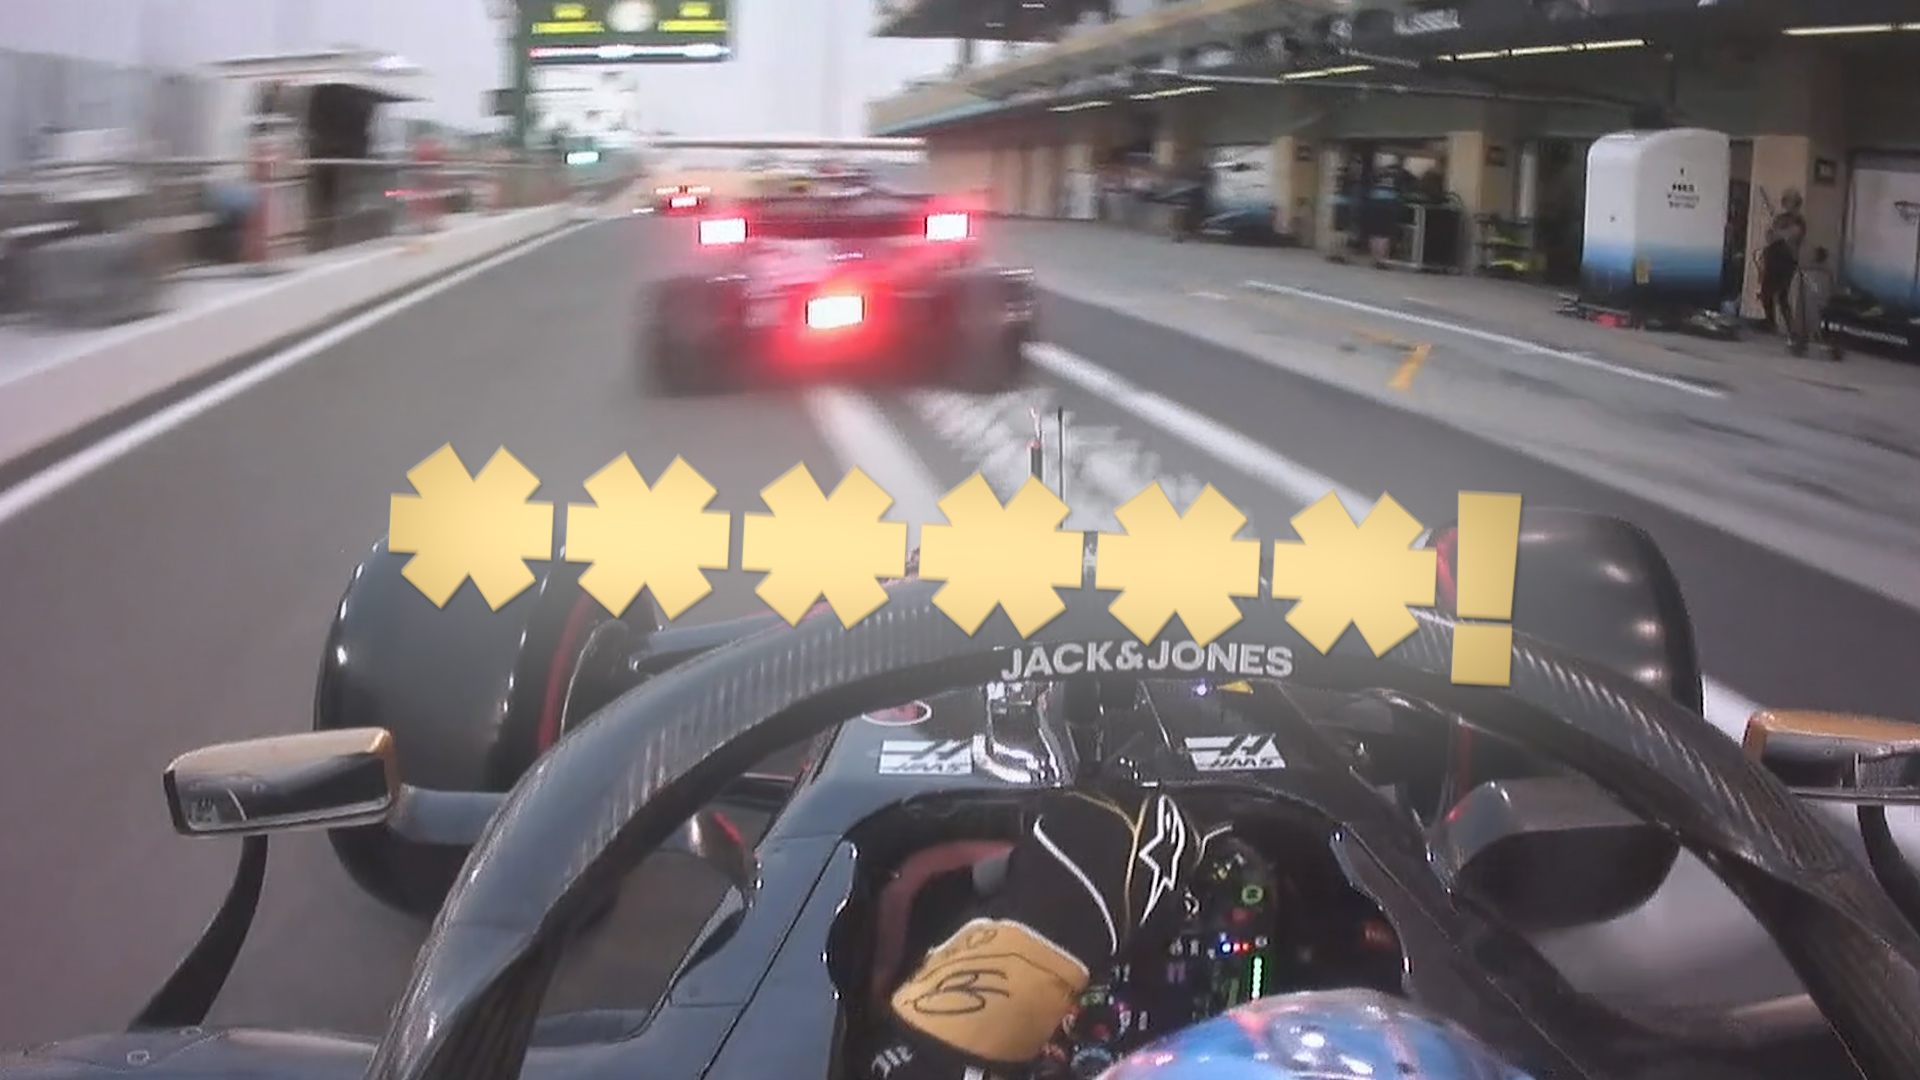 Qualifying: Close call for Grosjean and Kvyat in the pit lane